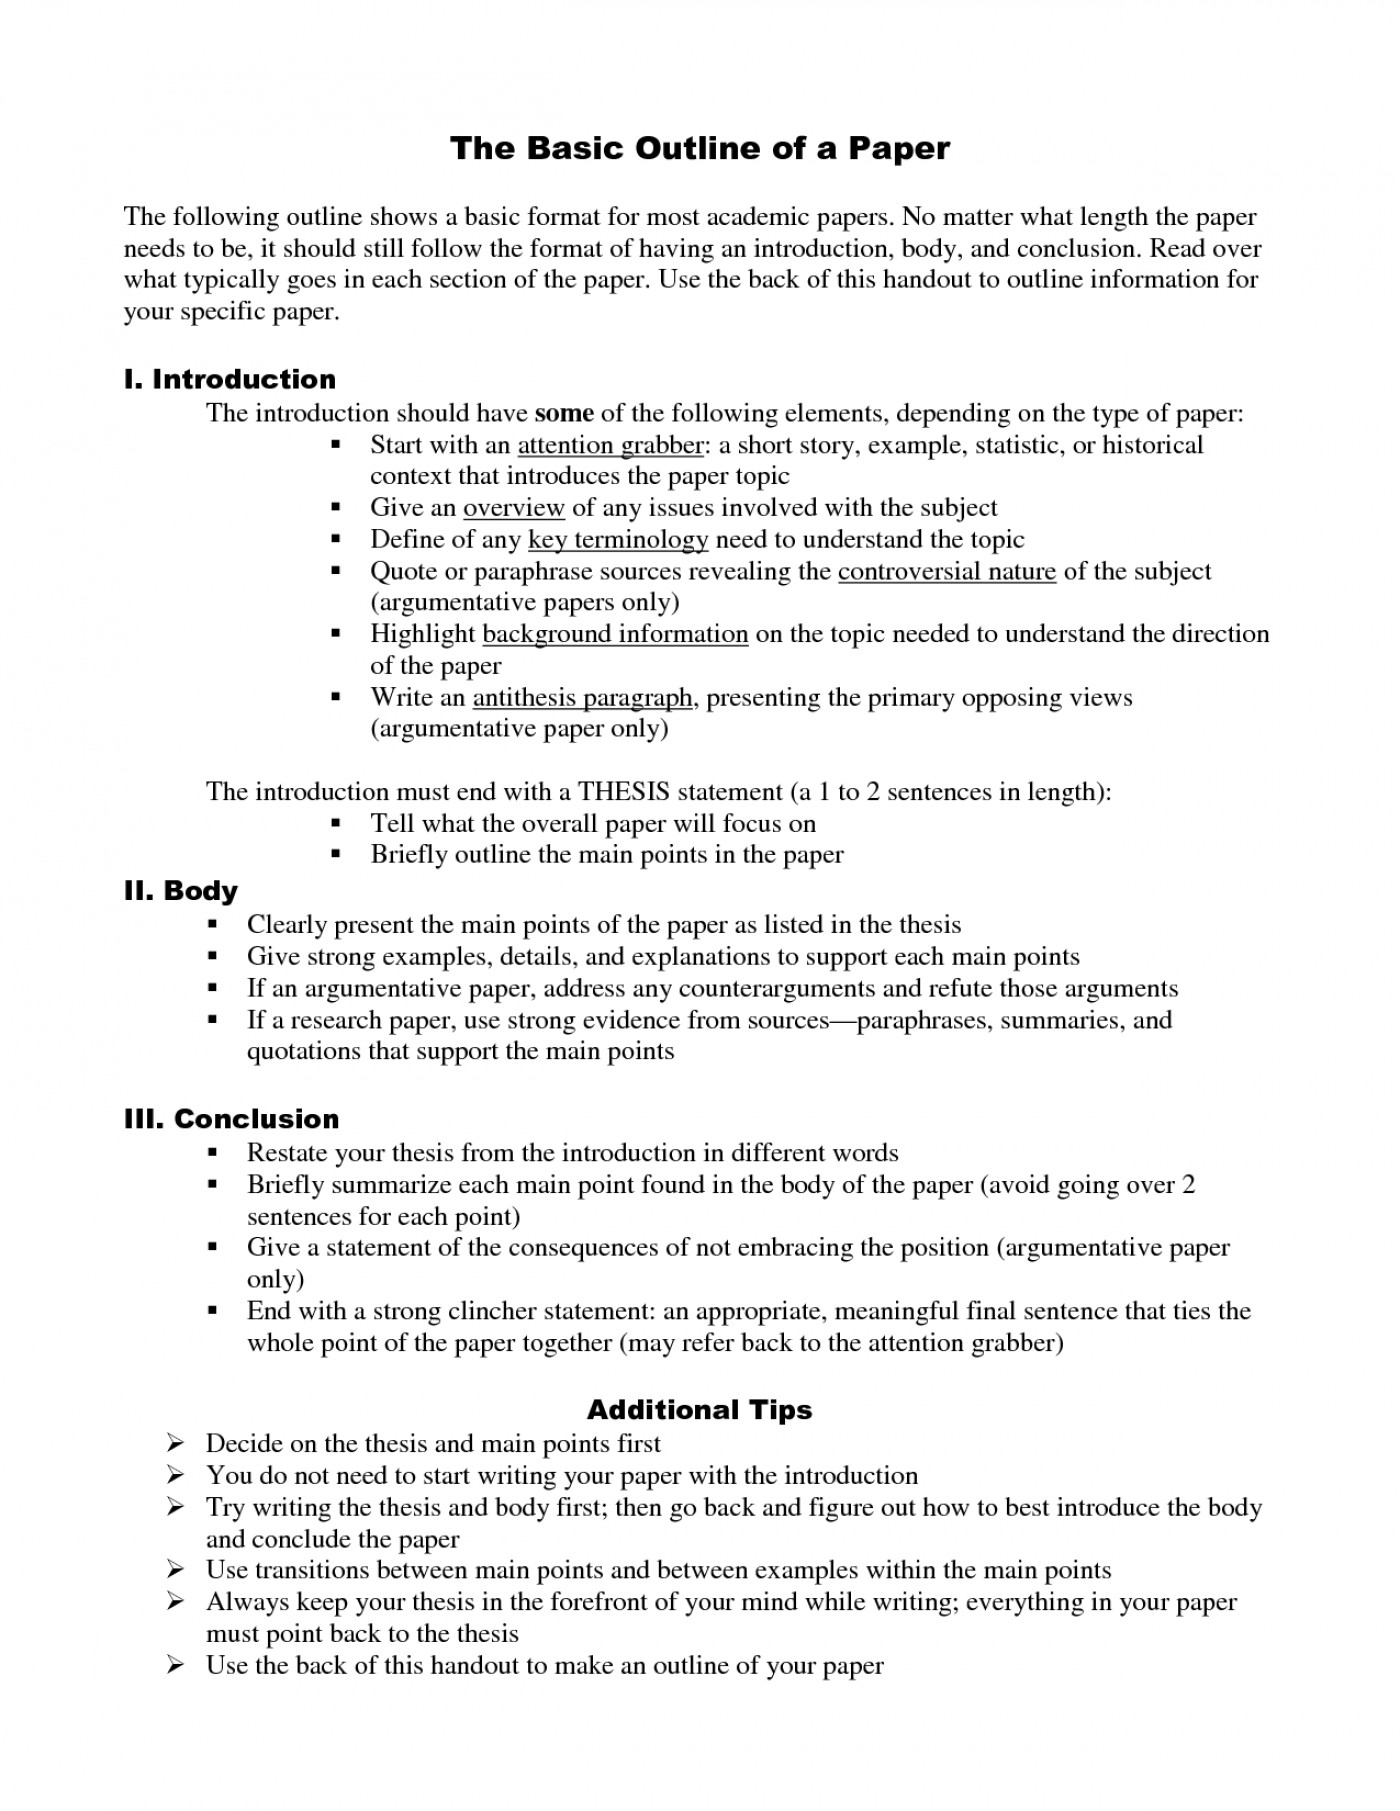 011 Paper Outline Research Template 7gkv1usl For Phenomenal A Mla How To Write An Ppt On Autism 1400